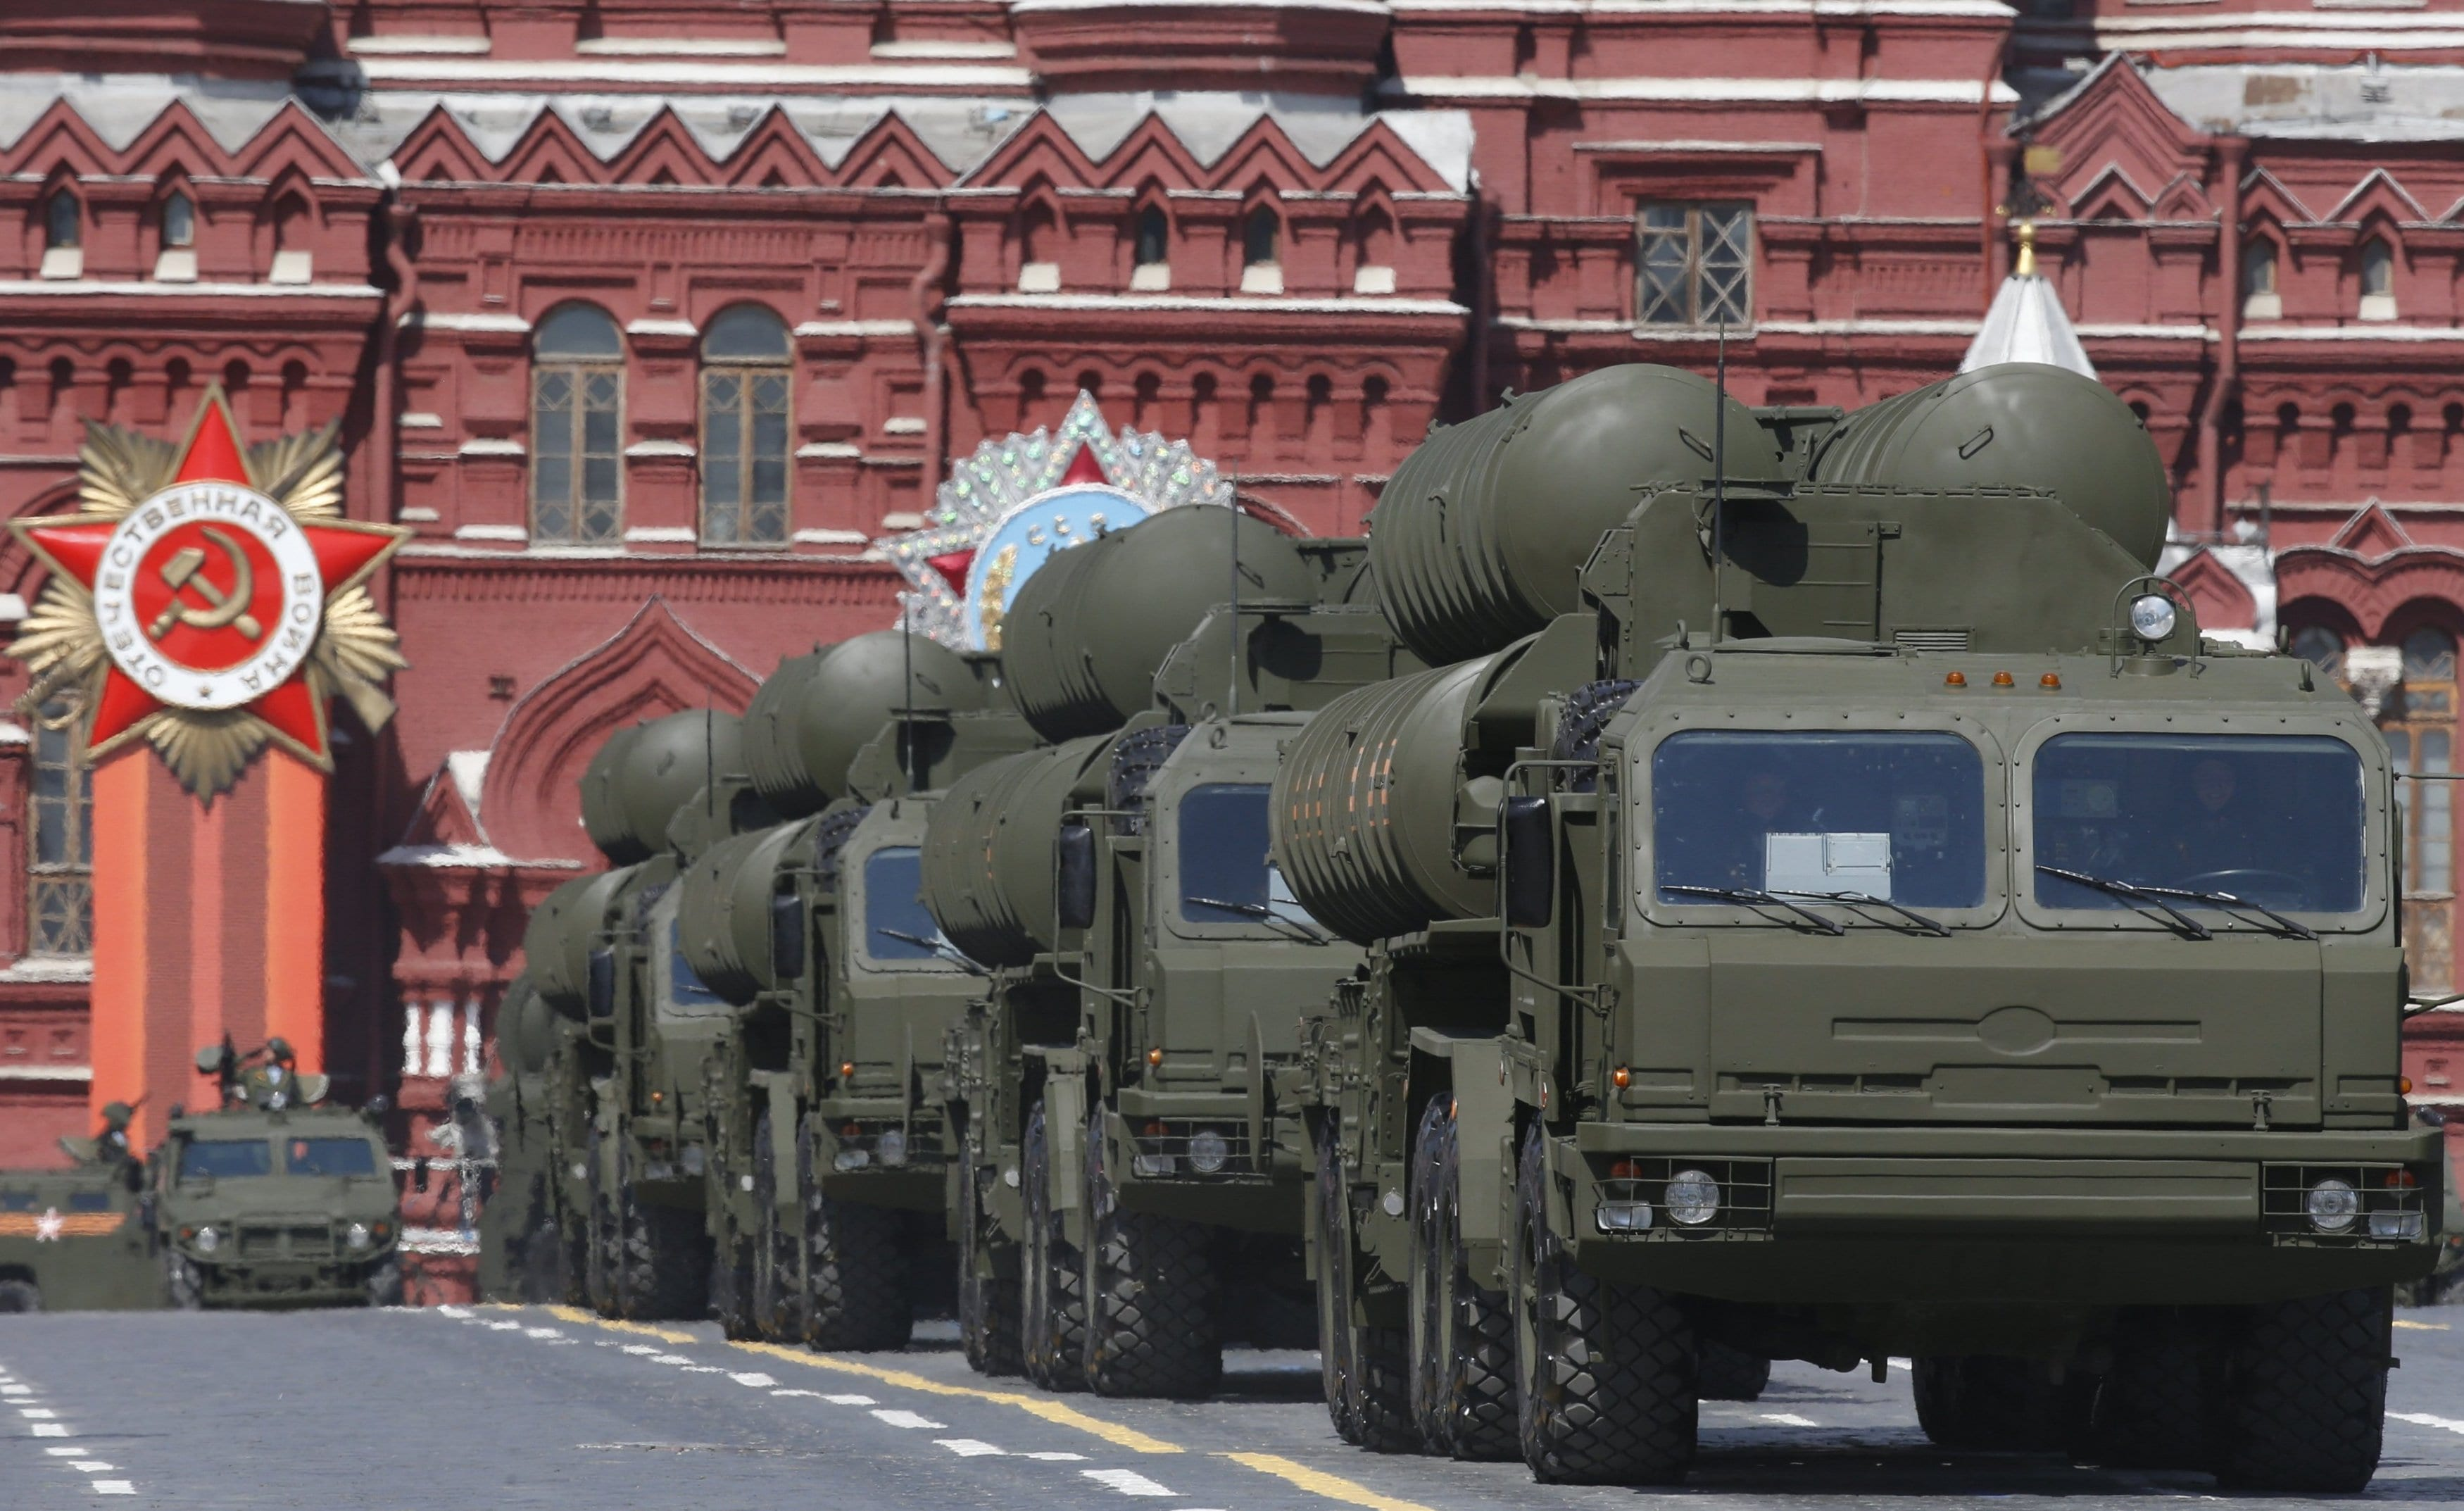 Image Russian S-400 Triumph Growler medium-range and long-range surface-to-air missile systems on display in the Victory Day parade at Red Square in Moscow [REUTERS / RIA Novosti]